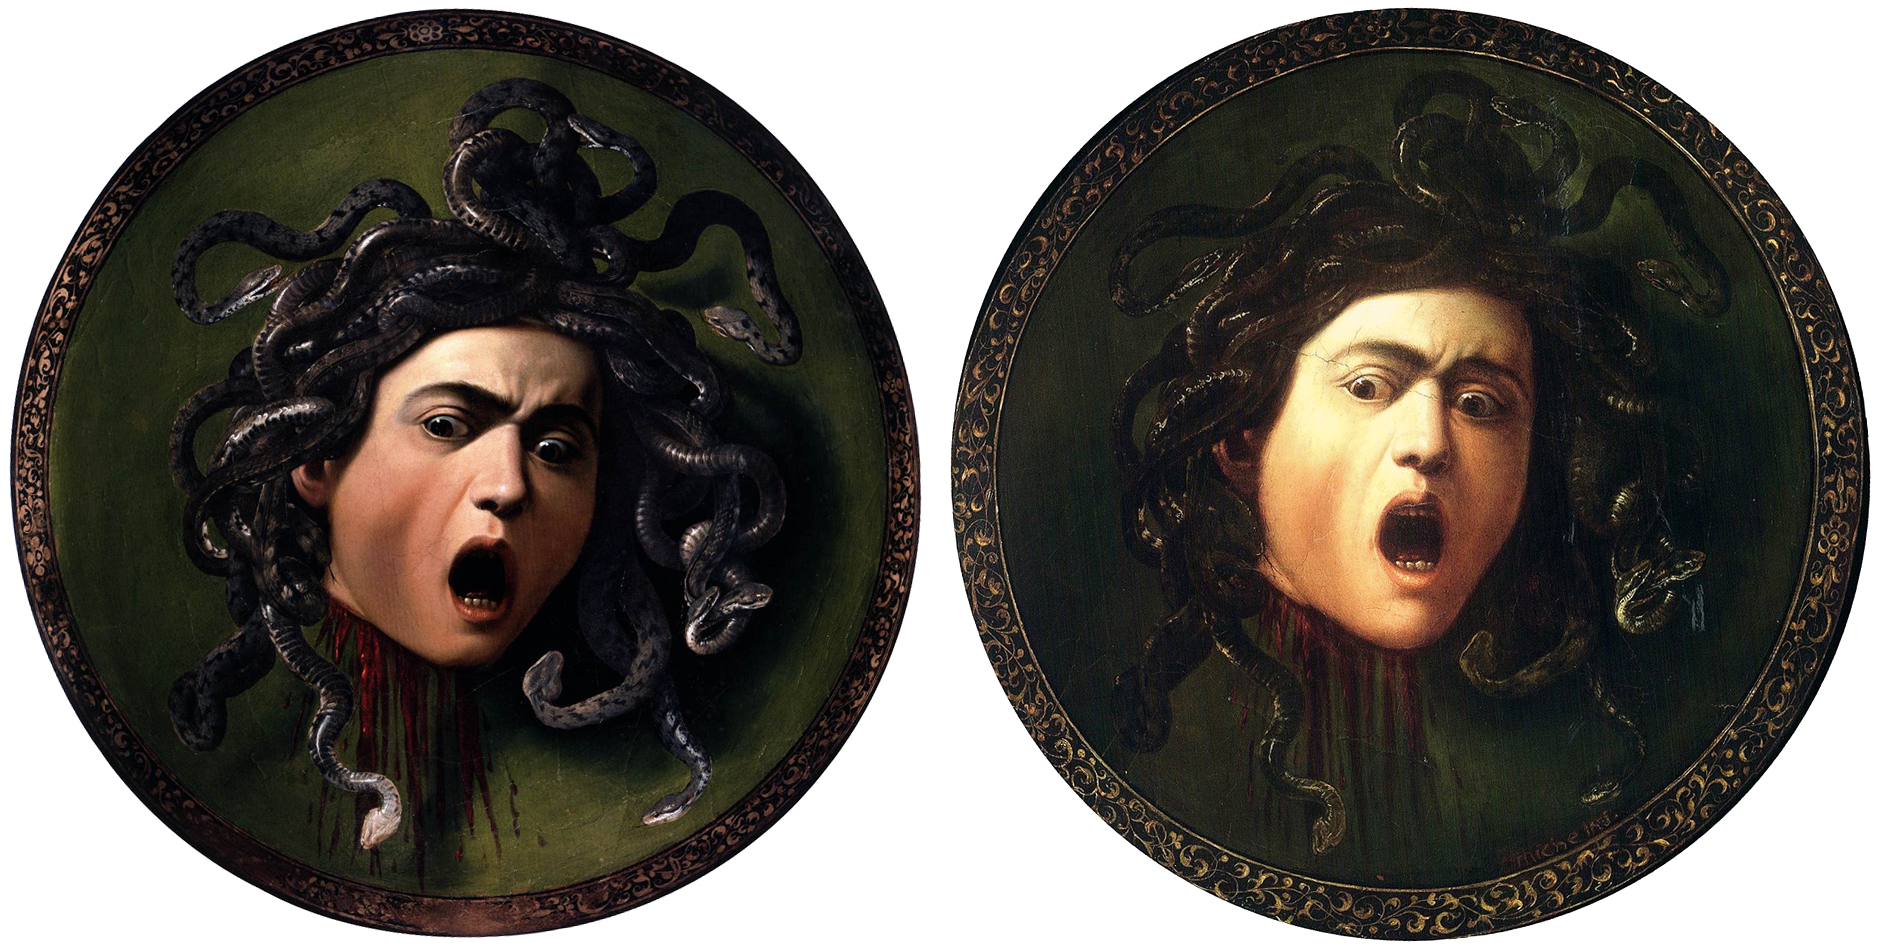 Caravaggio-Meduse-Medusa-insight-coaching-art, colère, hatred, anger